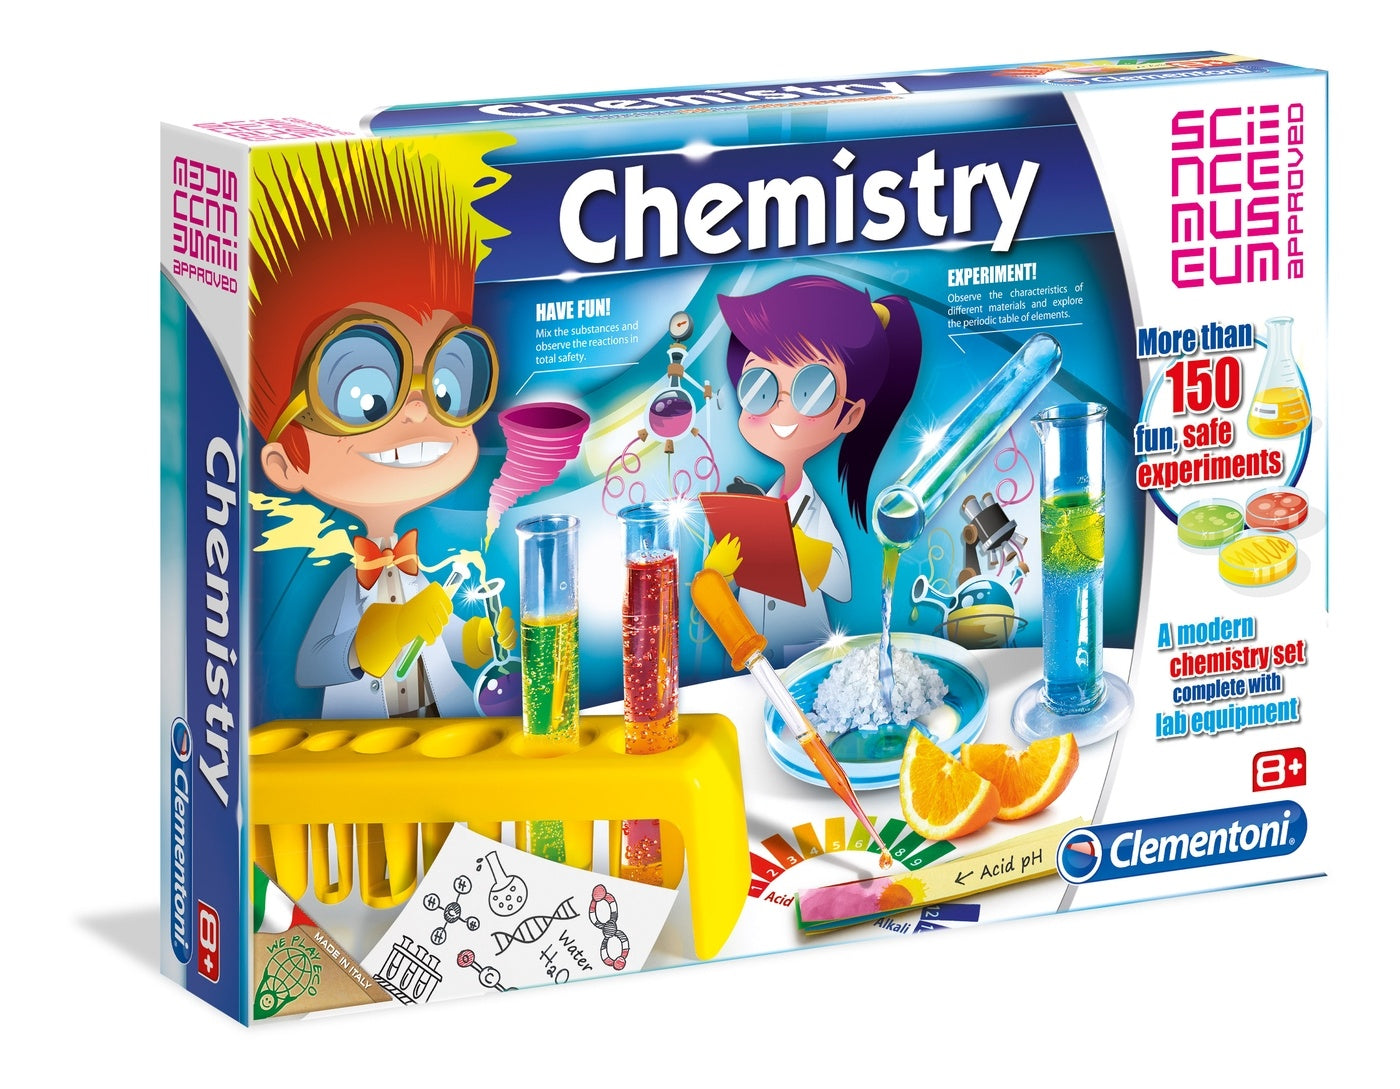 Clementoni Science Museum Chemistry Set